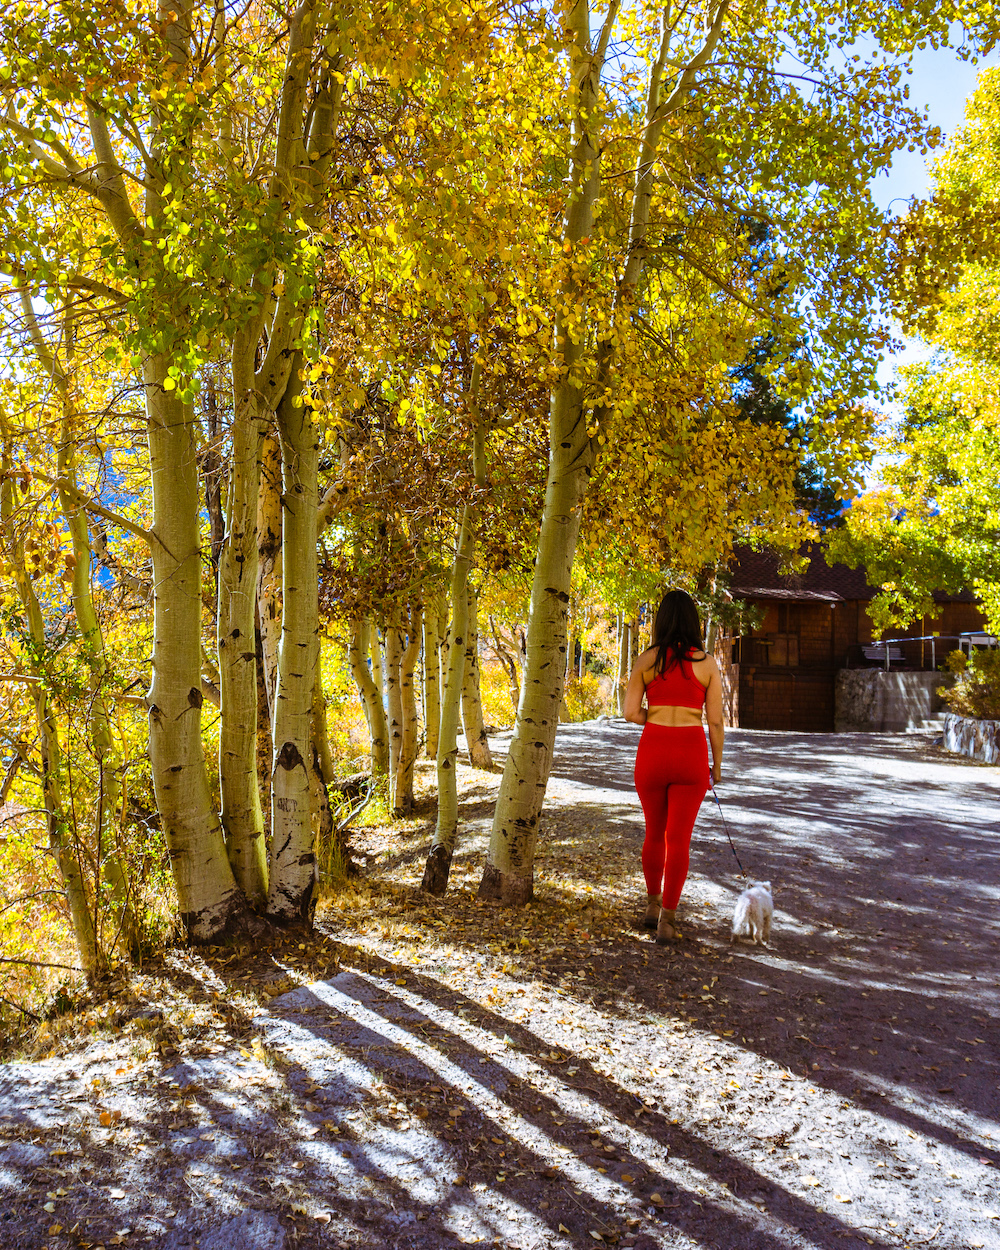 woman walking dog in small town with yellow aspen trees